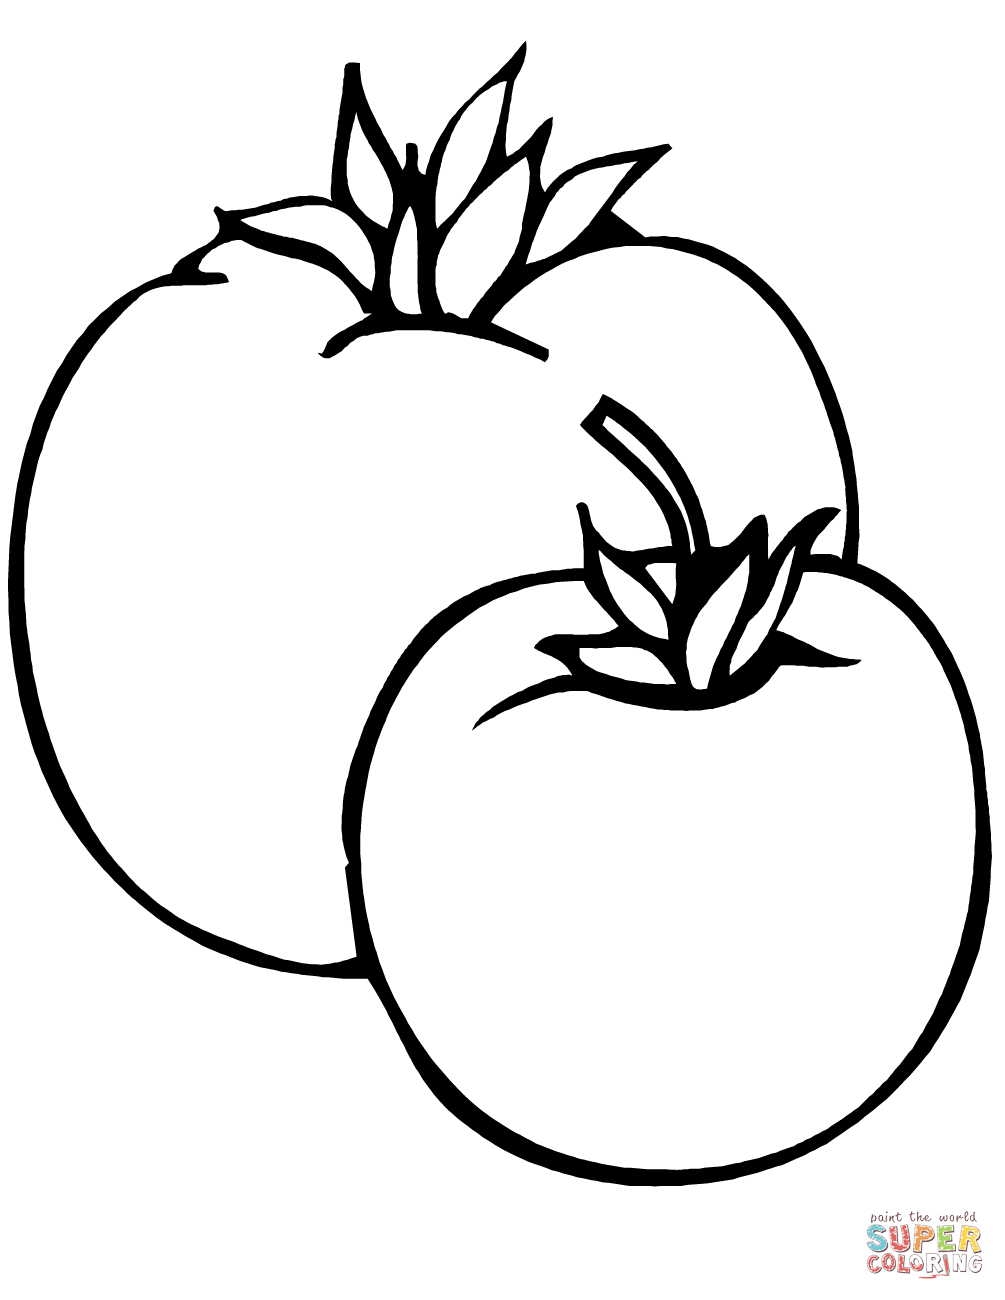 coloring tomato template 28 free printable tomato coloring pages in vector format template tomato coloring